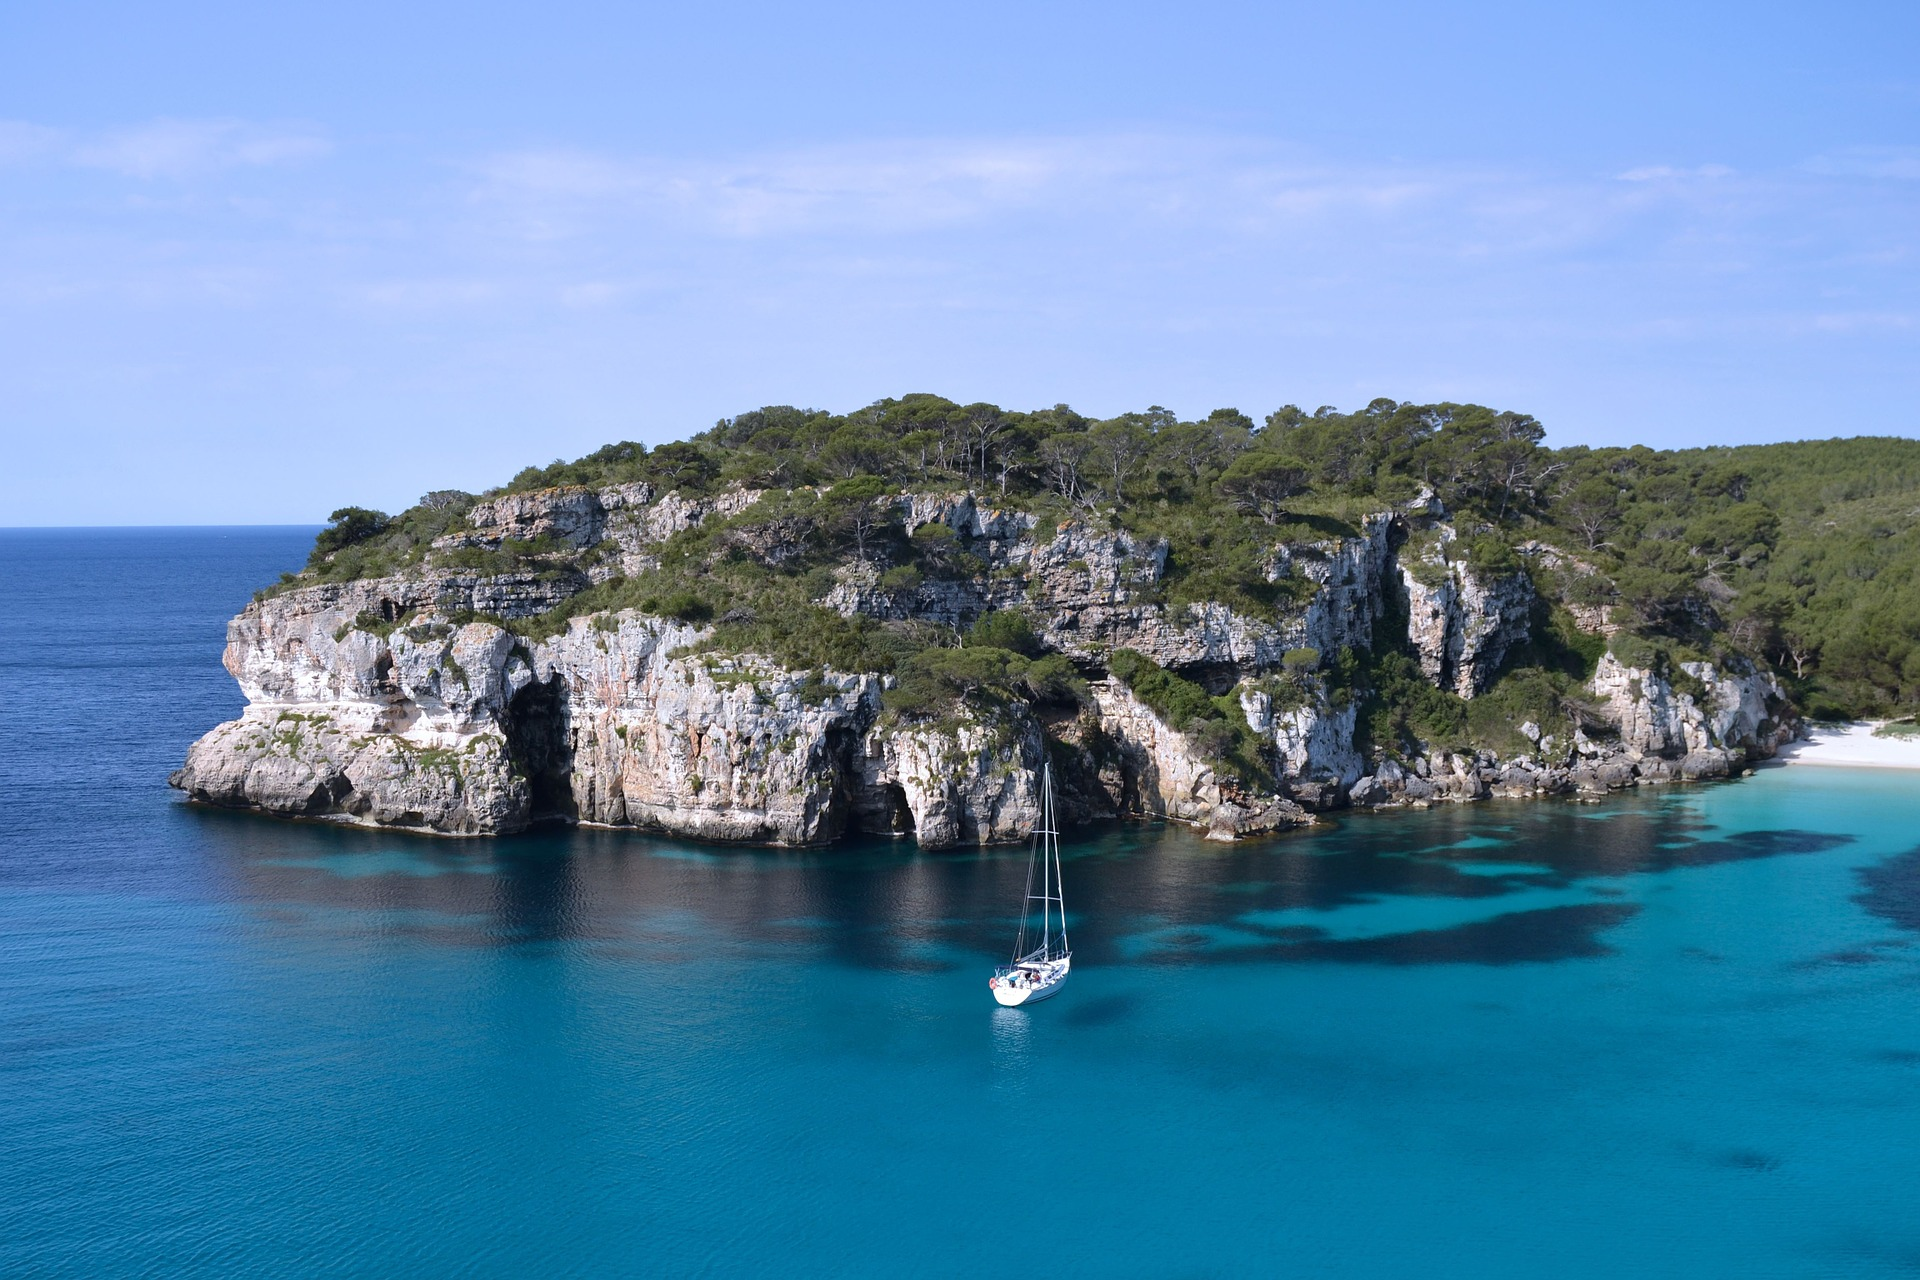 Formentera beach and cliffs, rent a boat in Spain